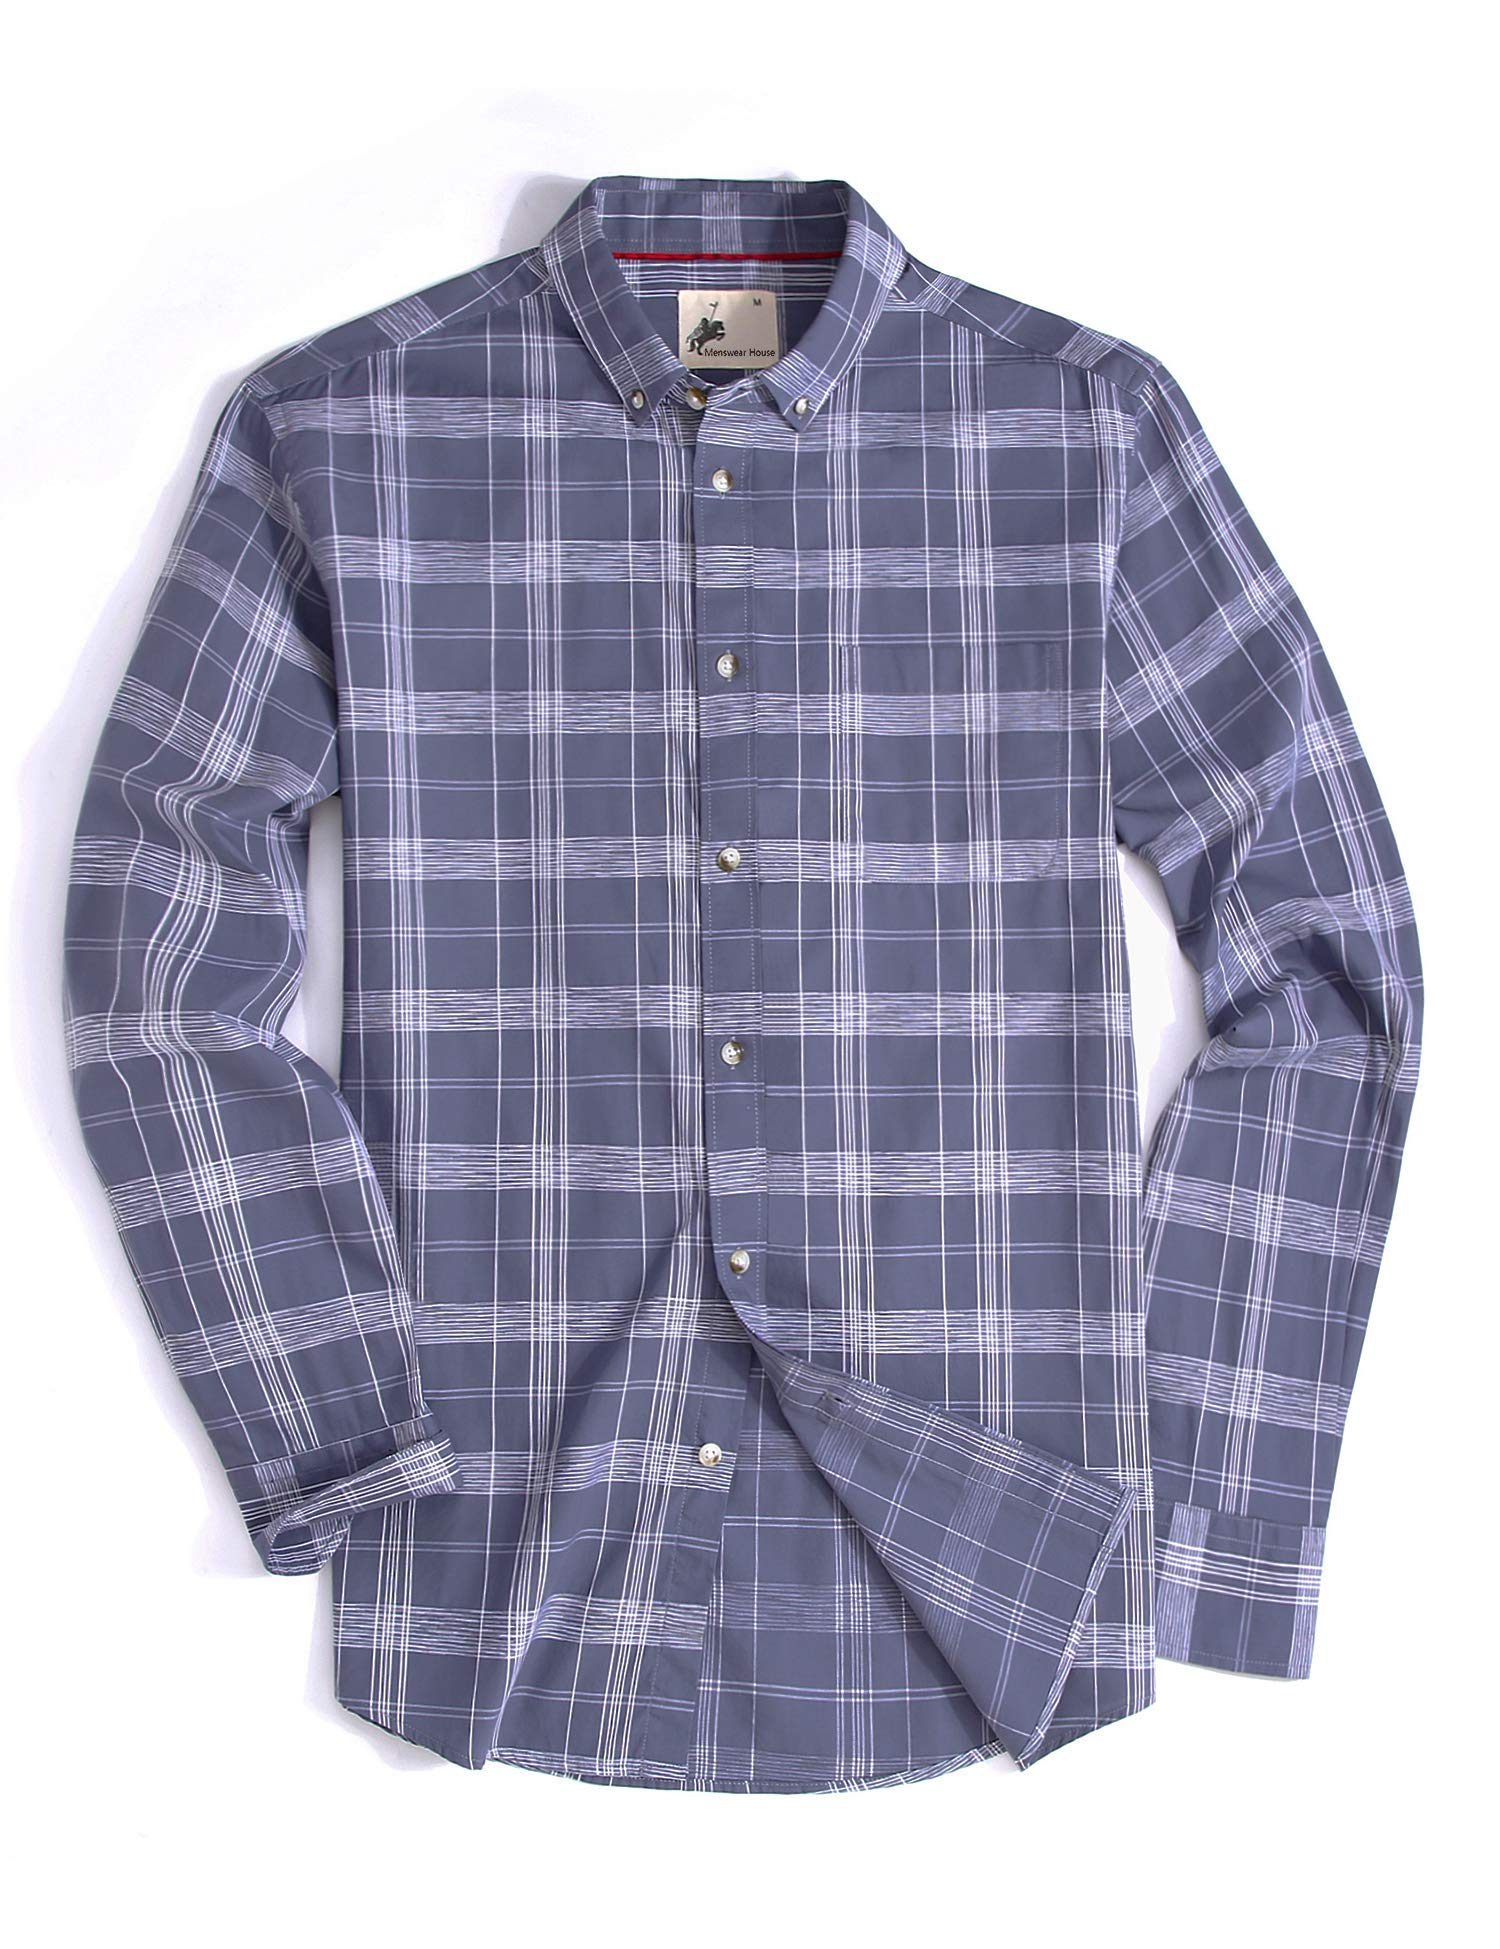 Menswear House Mens Casual Button Down Plaid Shirt Long Sleeve Cotton Regular Fit Dress Shirts (Grey, XXL)